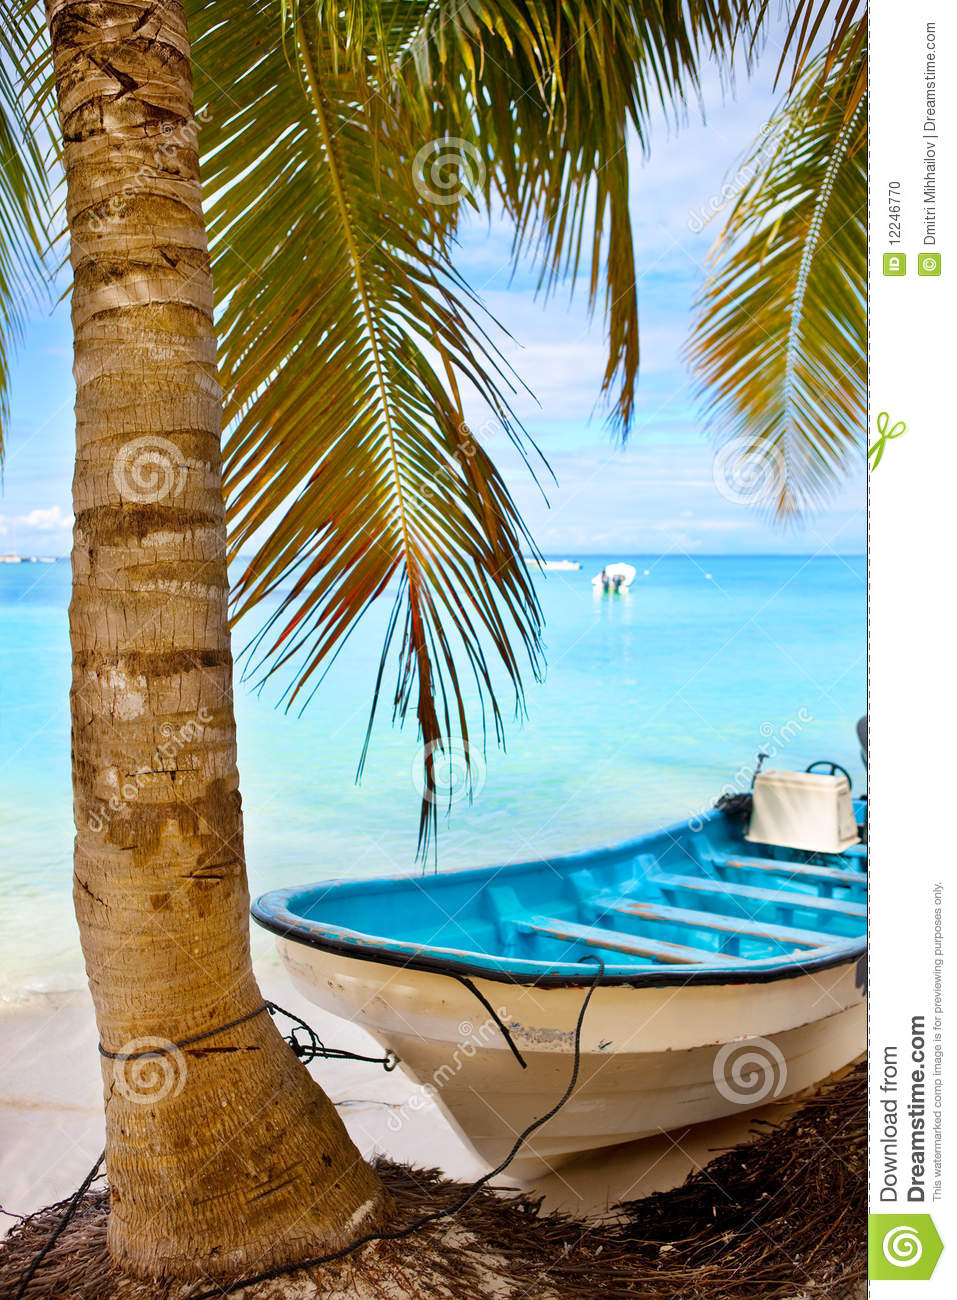 palm trees boat - photo #19